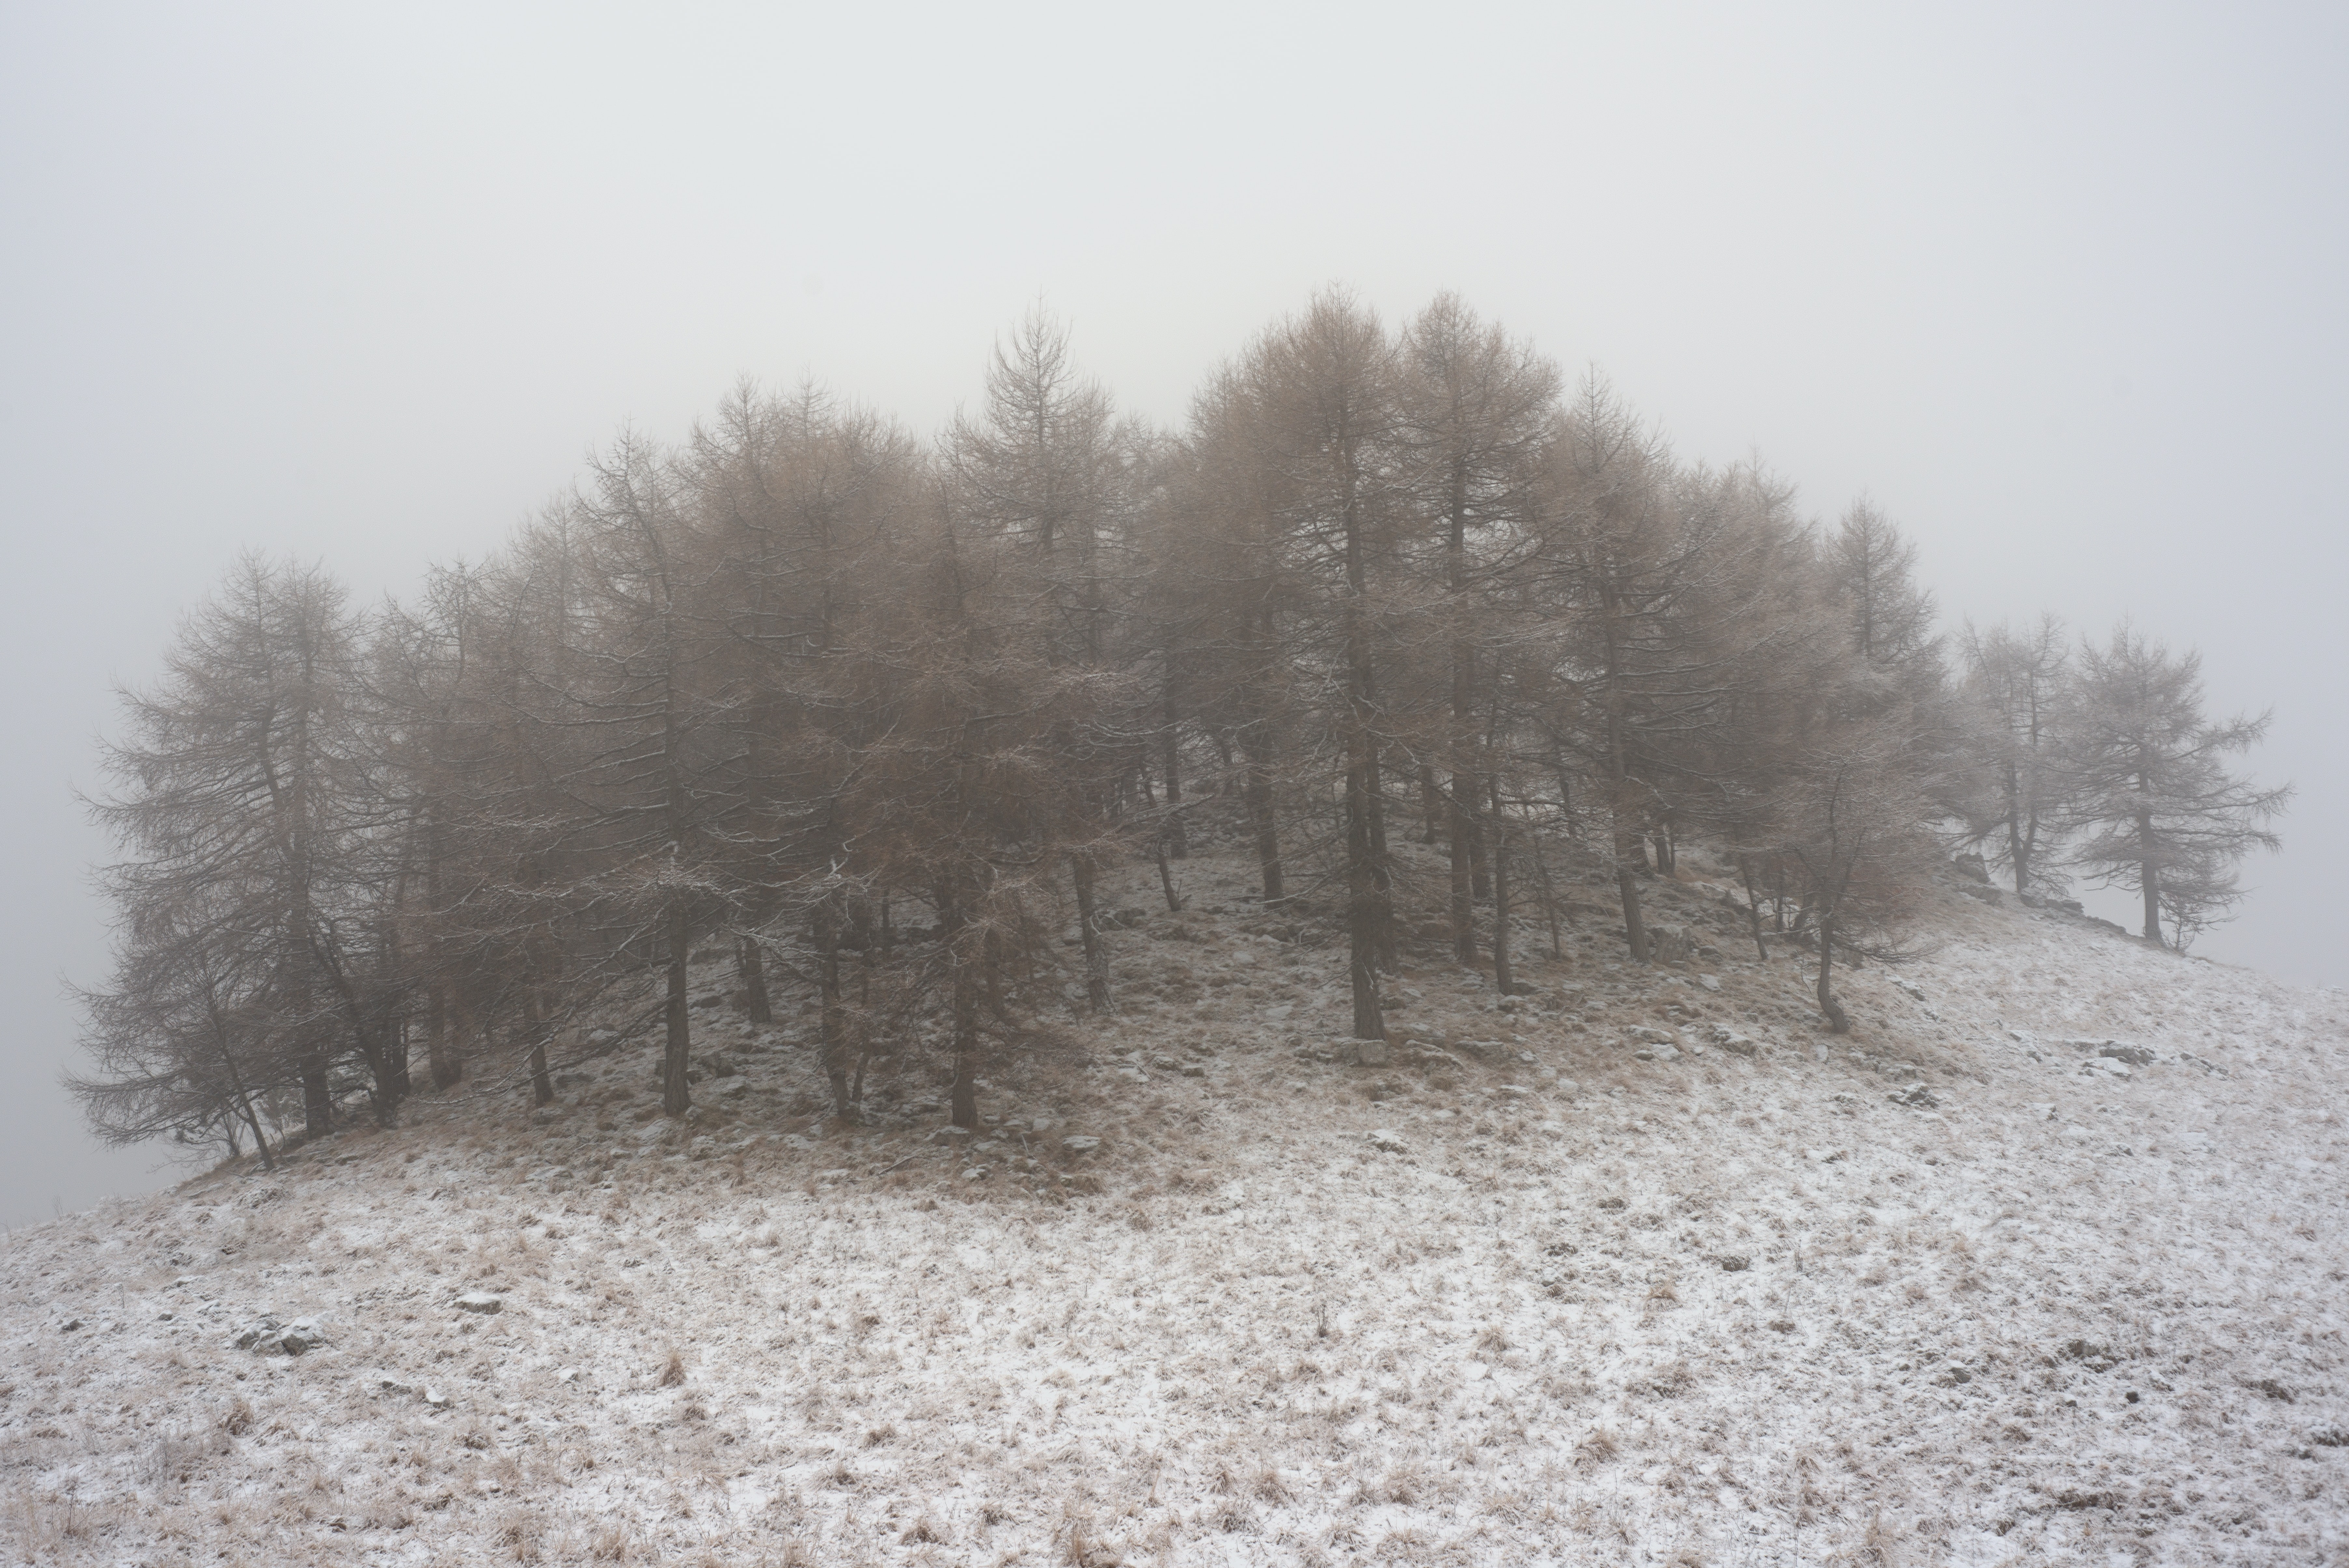 A clump of trees on top of a snowy hill on a foggy day